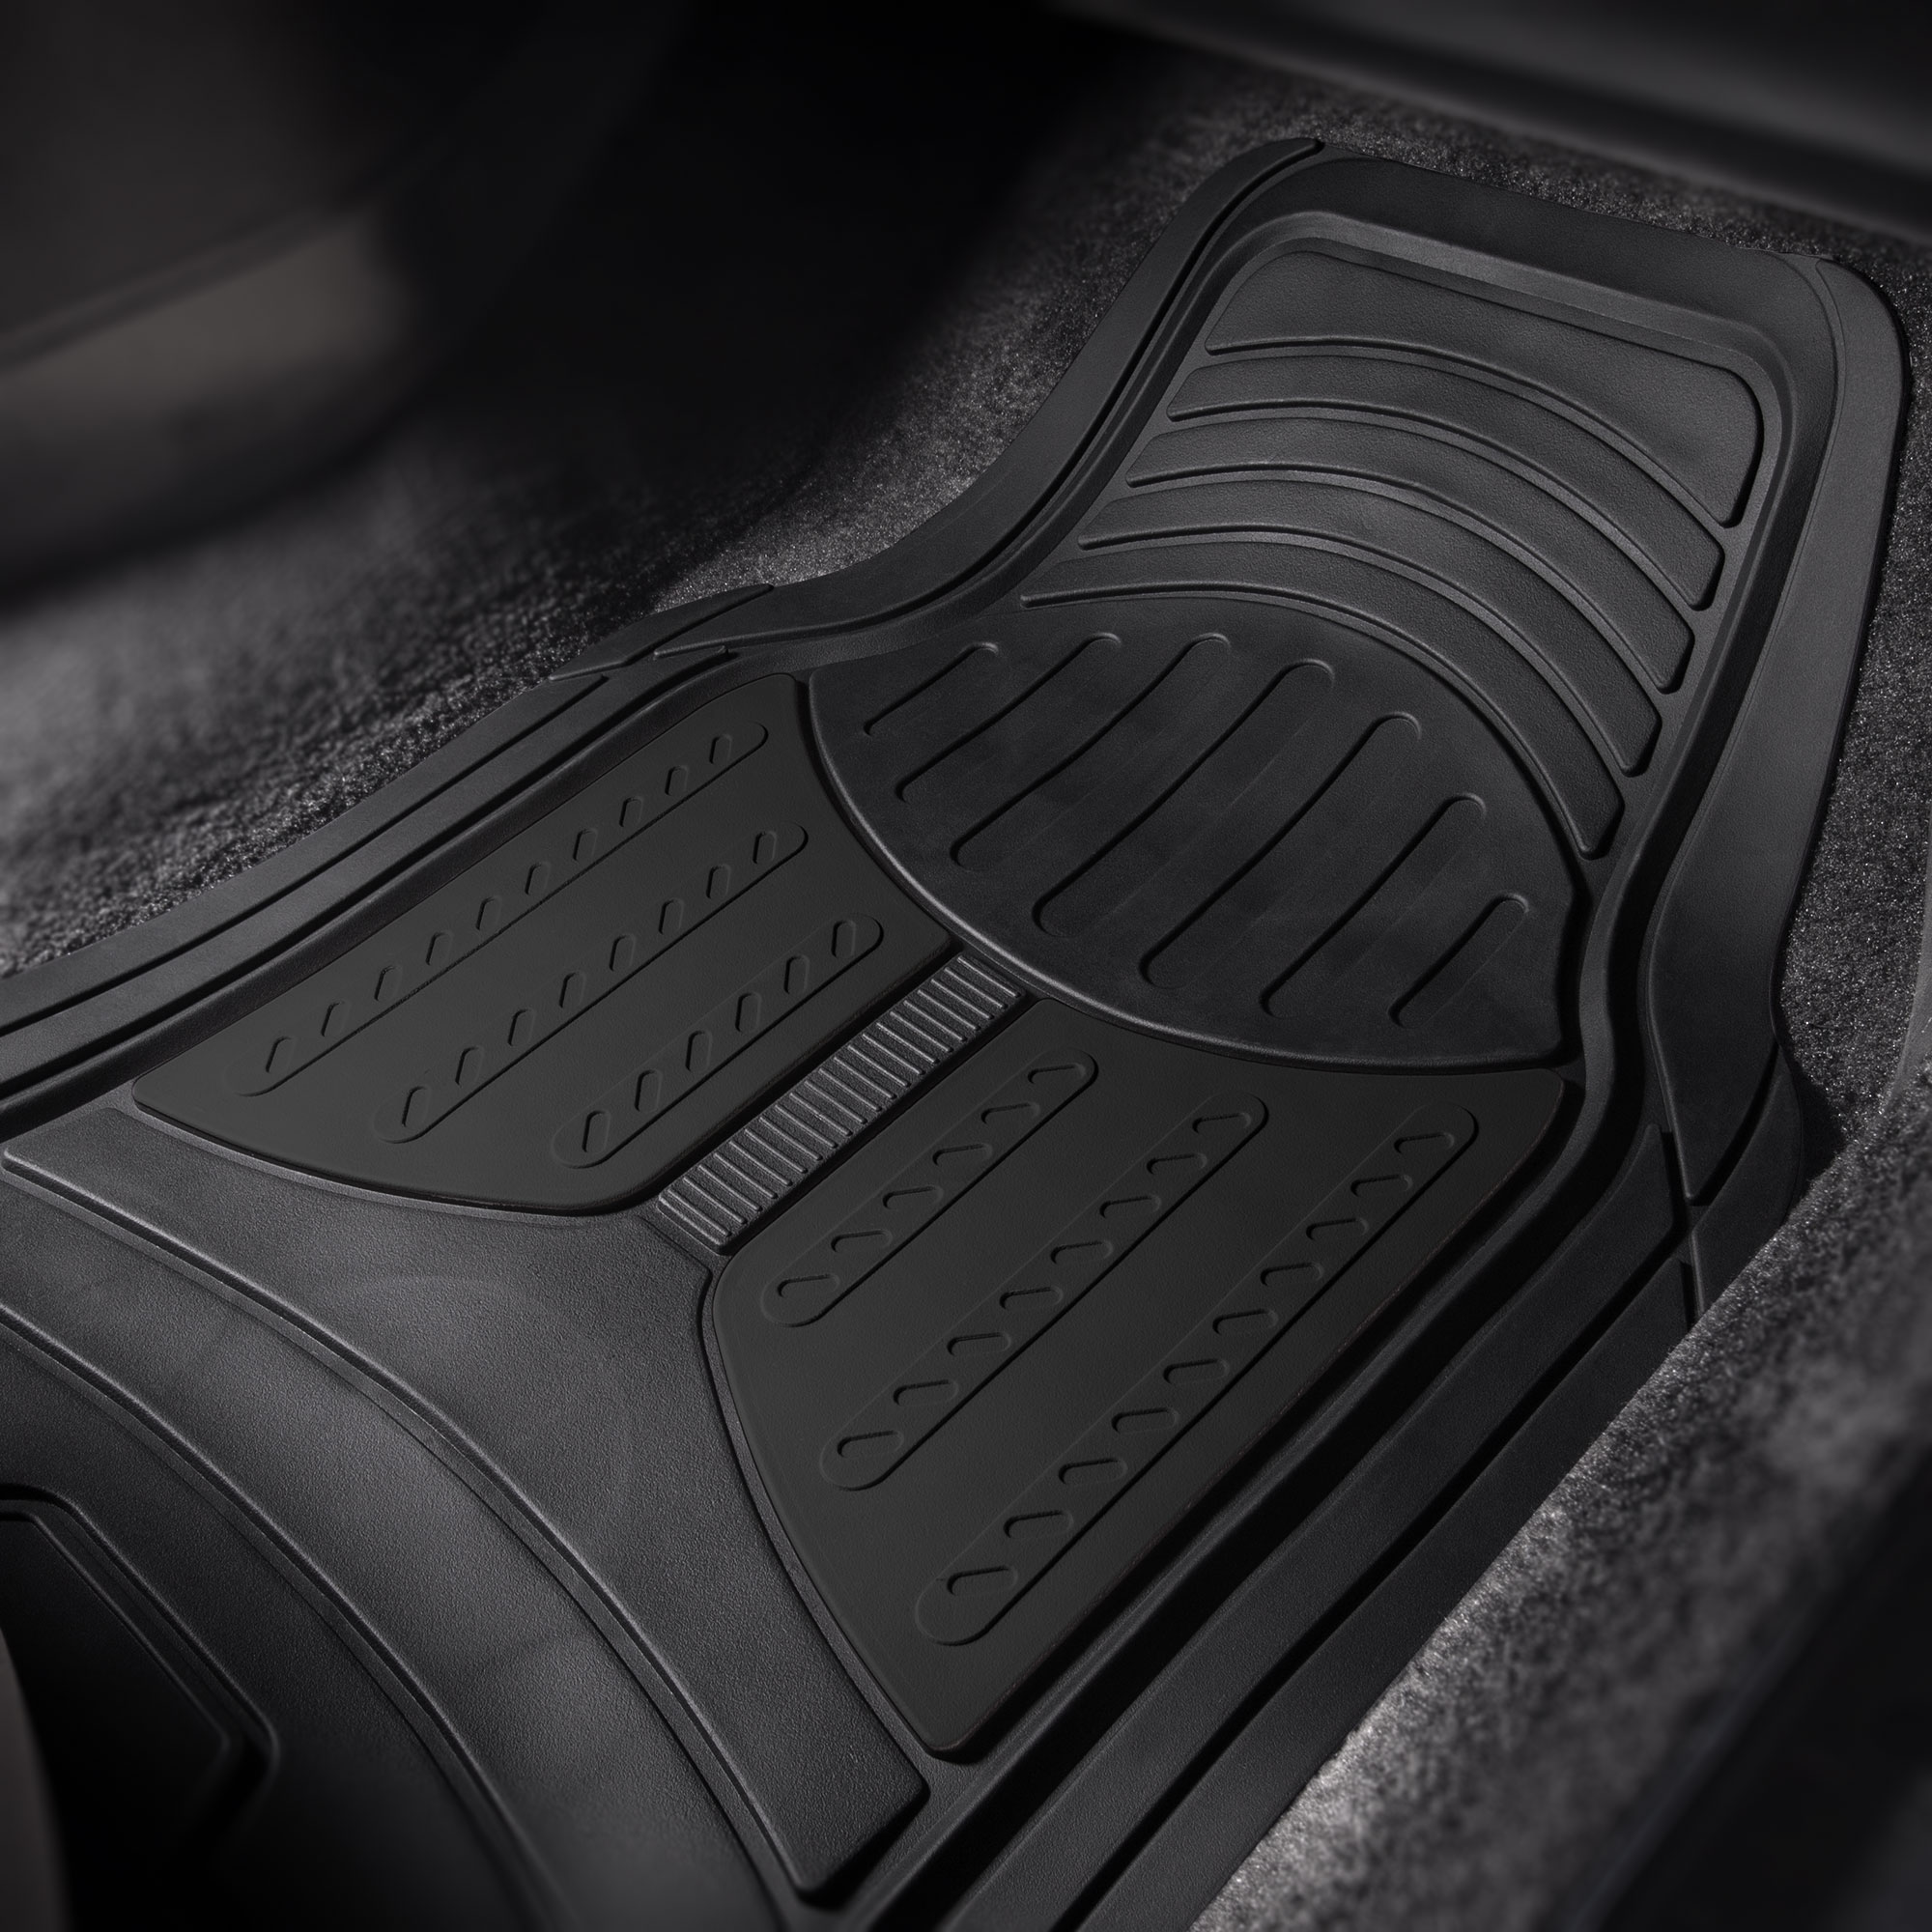 Car-Floor-Mats-for-All-Weather-Rubber-2-Tone-Design-4pc-Set-Heavy-Duty thumbnail 11